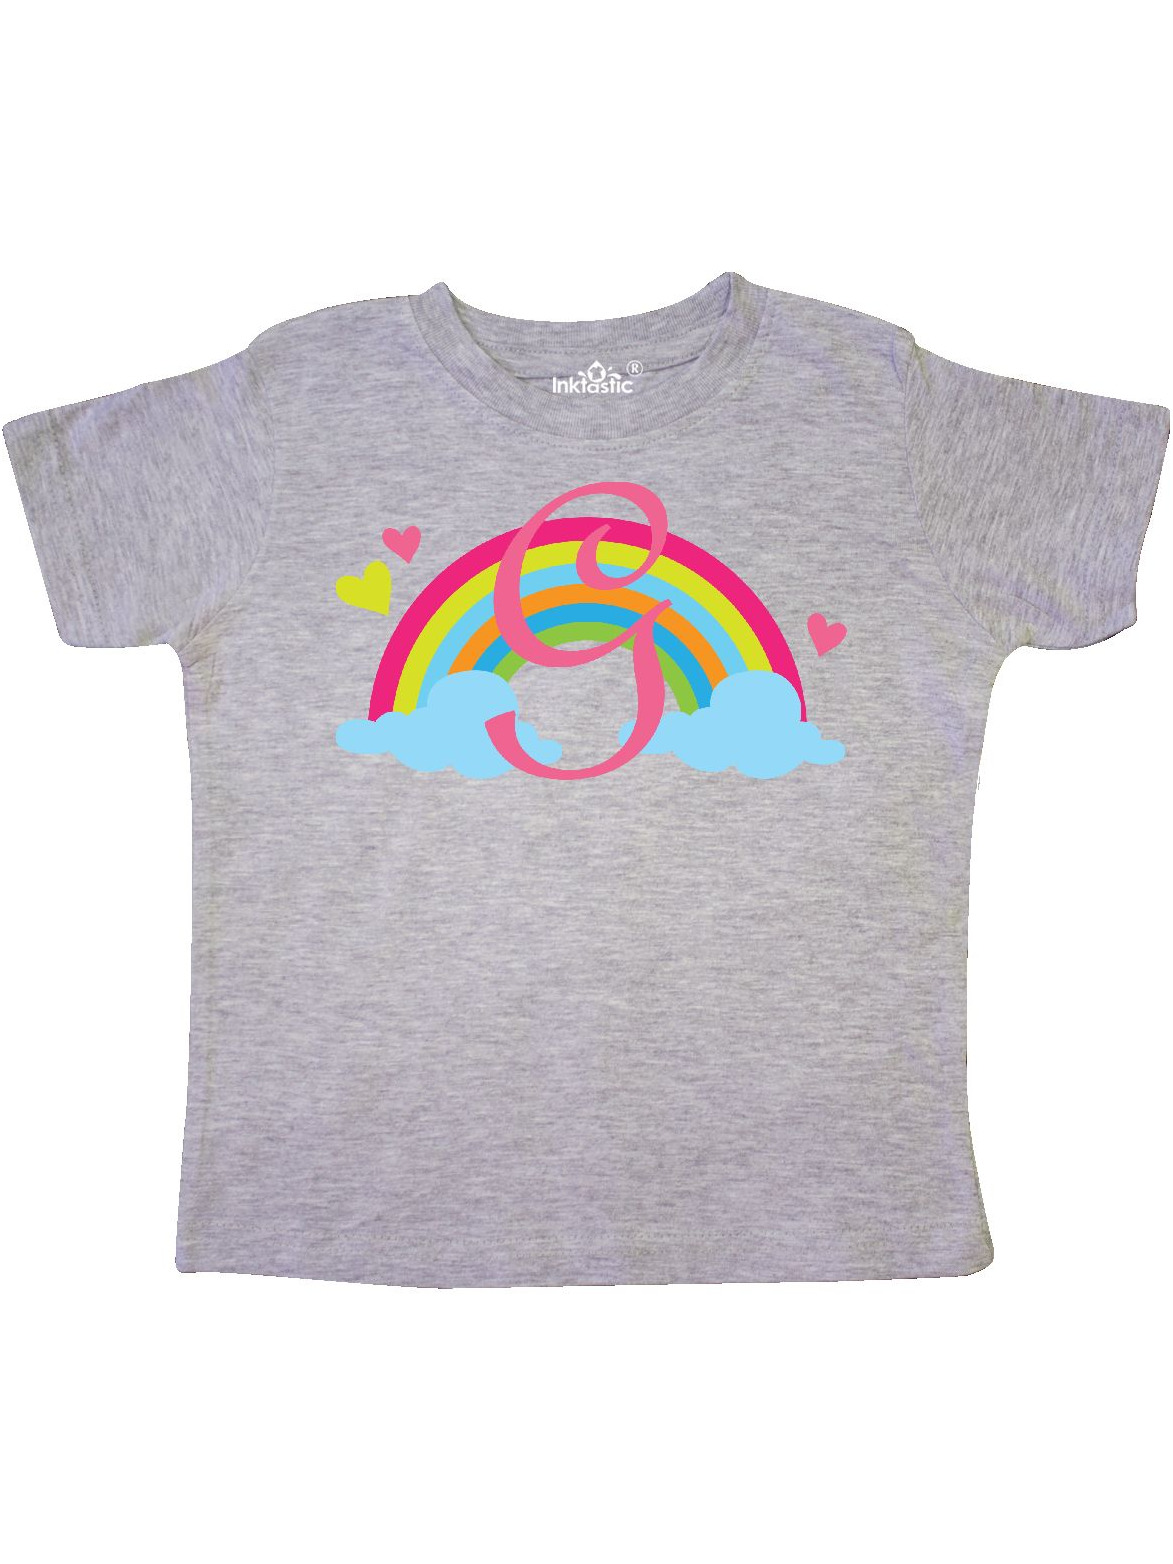 inktastic Monogram Letter L Rainbow Toddler T-Shirt